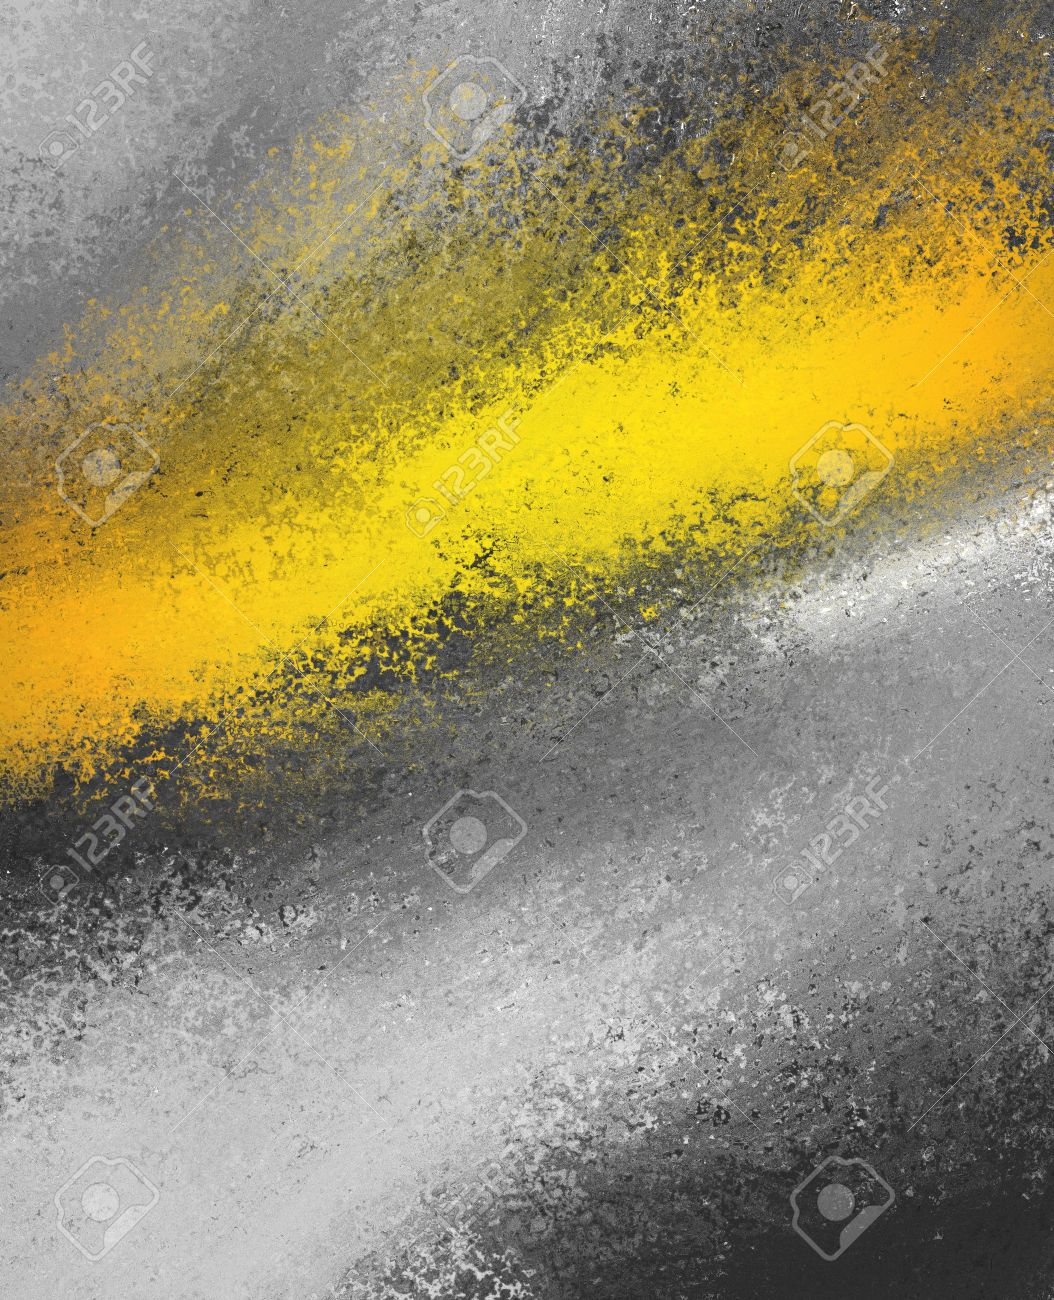 Gold color splash on black and white background stock photo 44187785